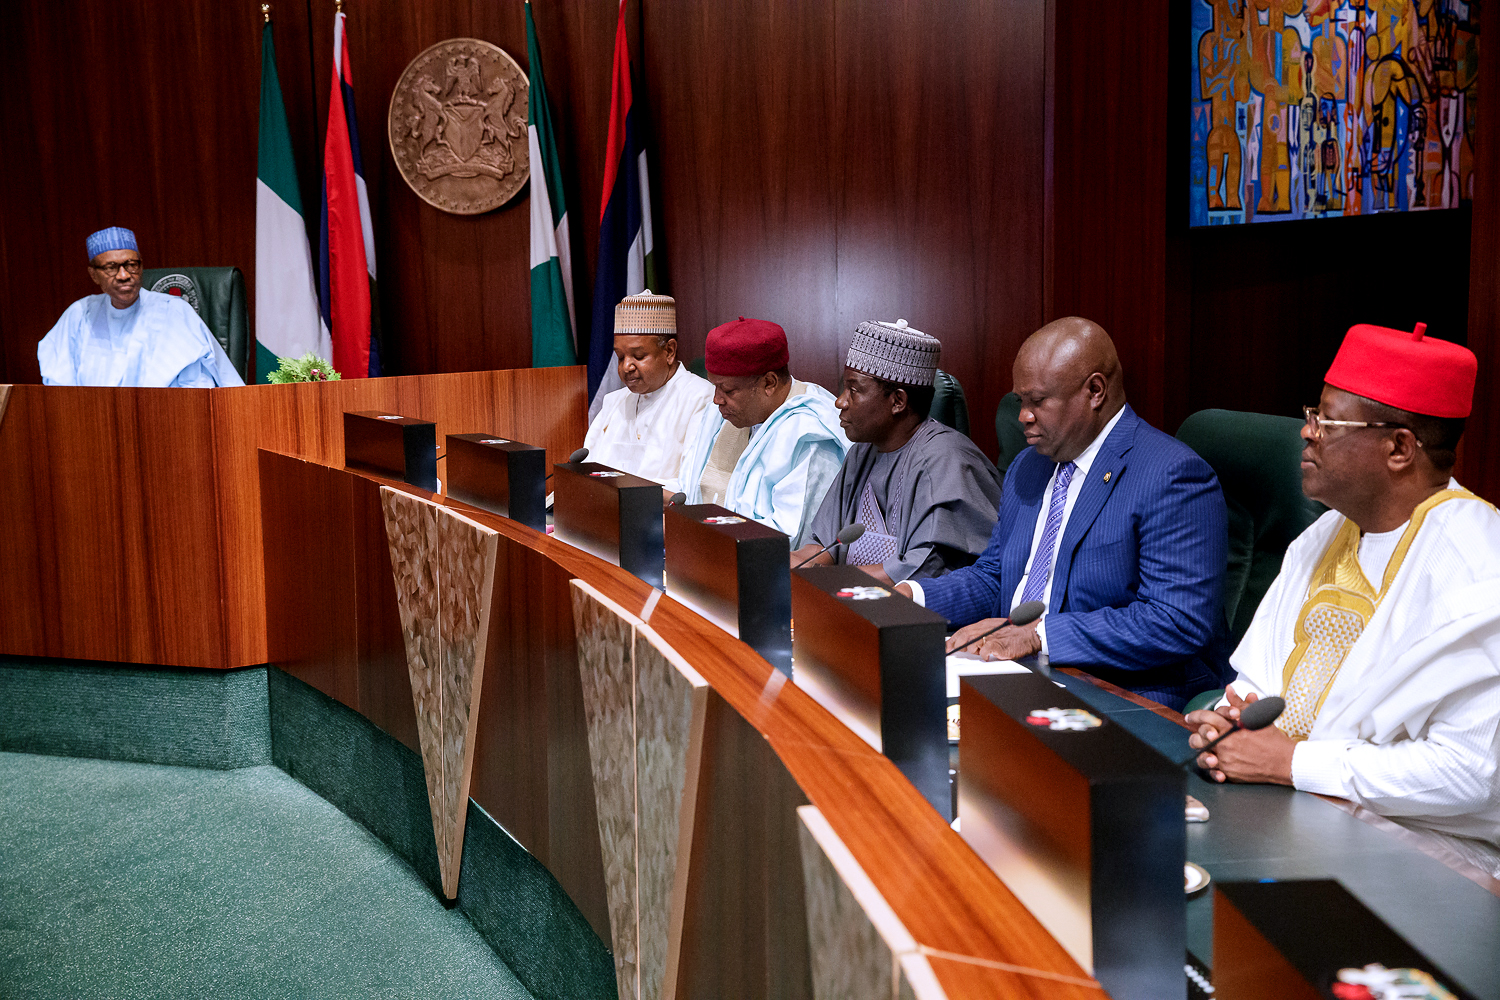 President Muhammadu Buhari (left); Lagos State Governor, Mr. Akinwunmi Ambode (2nd right); Governor David Umahi of Ebonyi State (right); Governor of Plateau State, Barr. Simon Lalong (3rd right); Governor Darius Ishaku of Taraba State (3rd left) and Governor Atiku Bagudu of Kebbi State (2nd left) during the inauguration of National Food Security Council by the President at the Council Chamber, Presidential Villa, Abuja, on Monday, March 26, 2018.